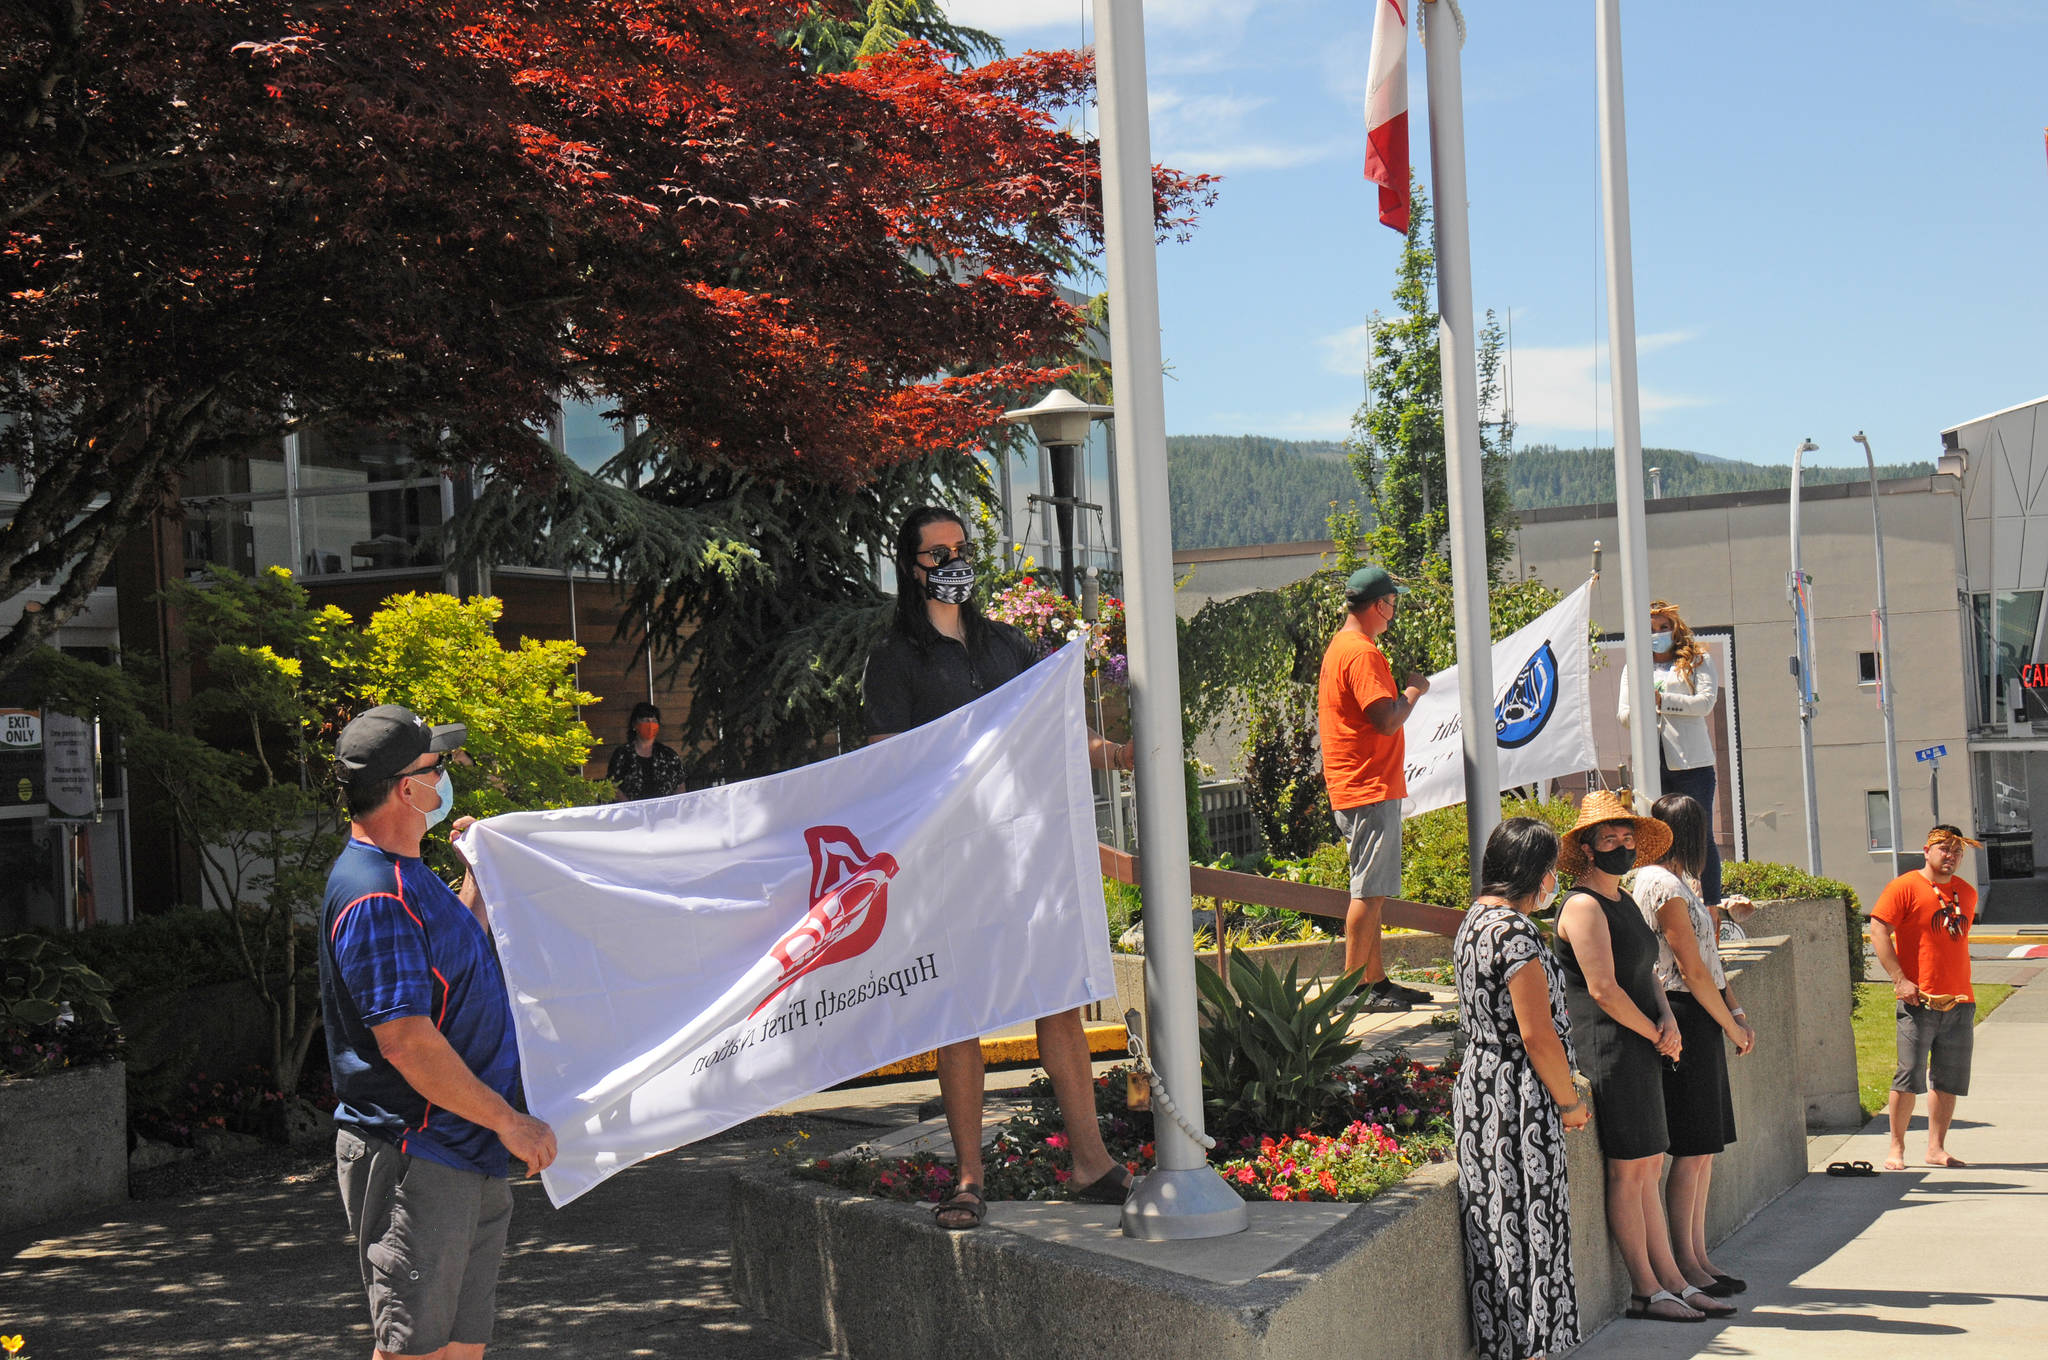 Council members and witnesses from the Hupacasath First Nation, left, and Tseshaht First Nation, right, prepare to raise their respective flags in front of Port Alberni City Hall on Monday, June 21, 2021. The flags will permanently fly as part of the city's reconciliation work. (SUSAN QUINN/ Alberni Valley News)